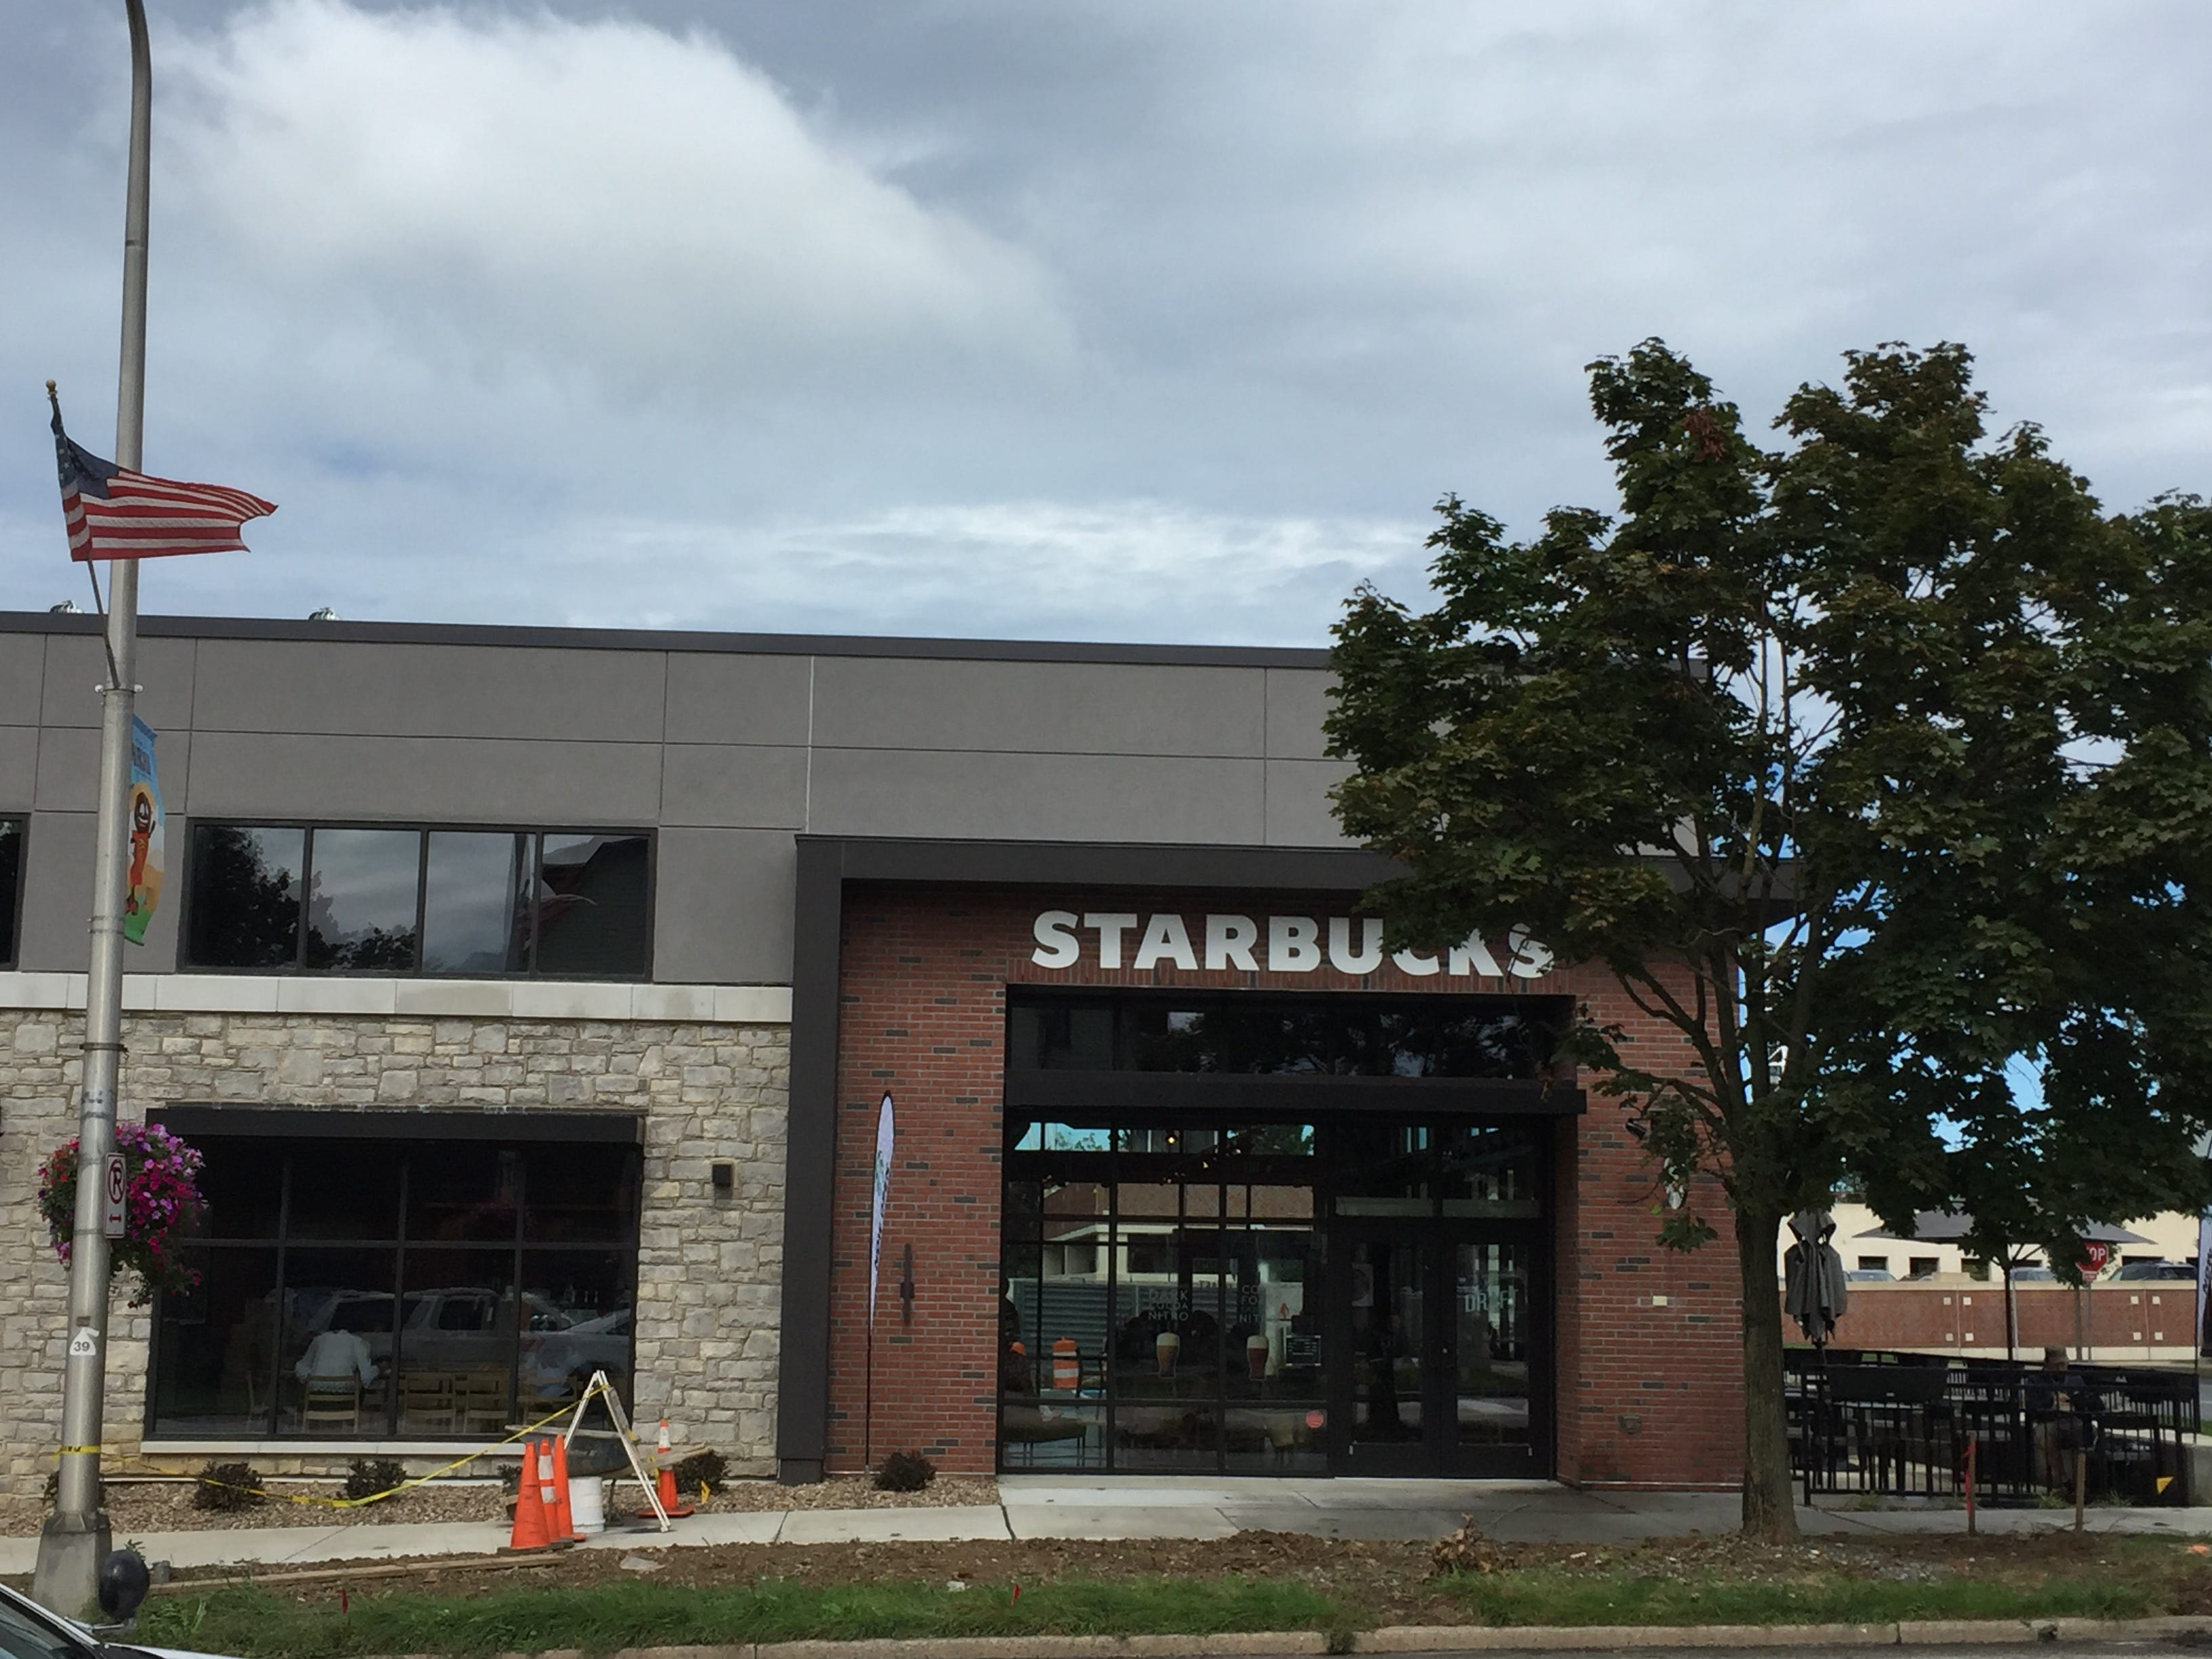 A Great Clips will eventually open next door to Starbucks, which has a cozy outdoor patio visible on the right.